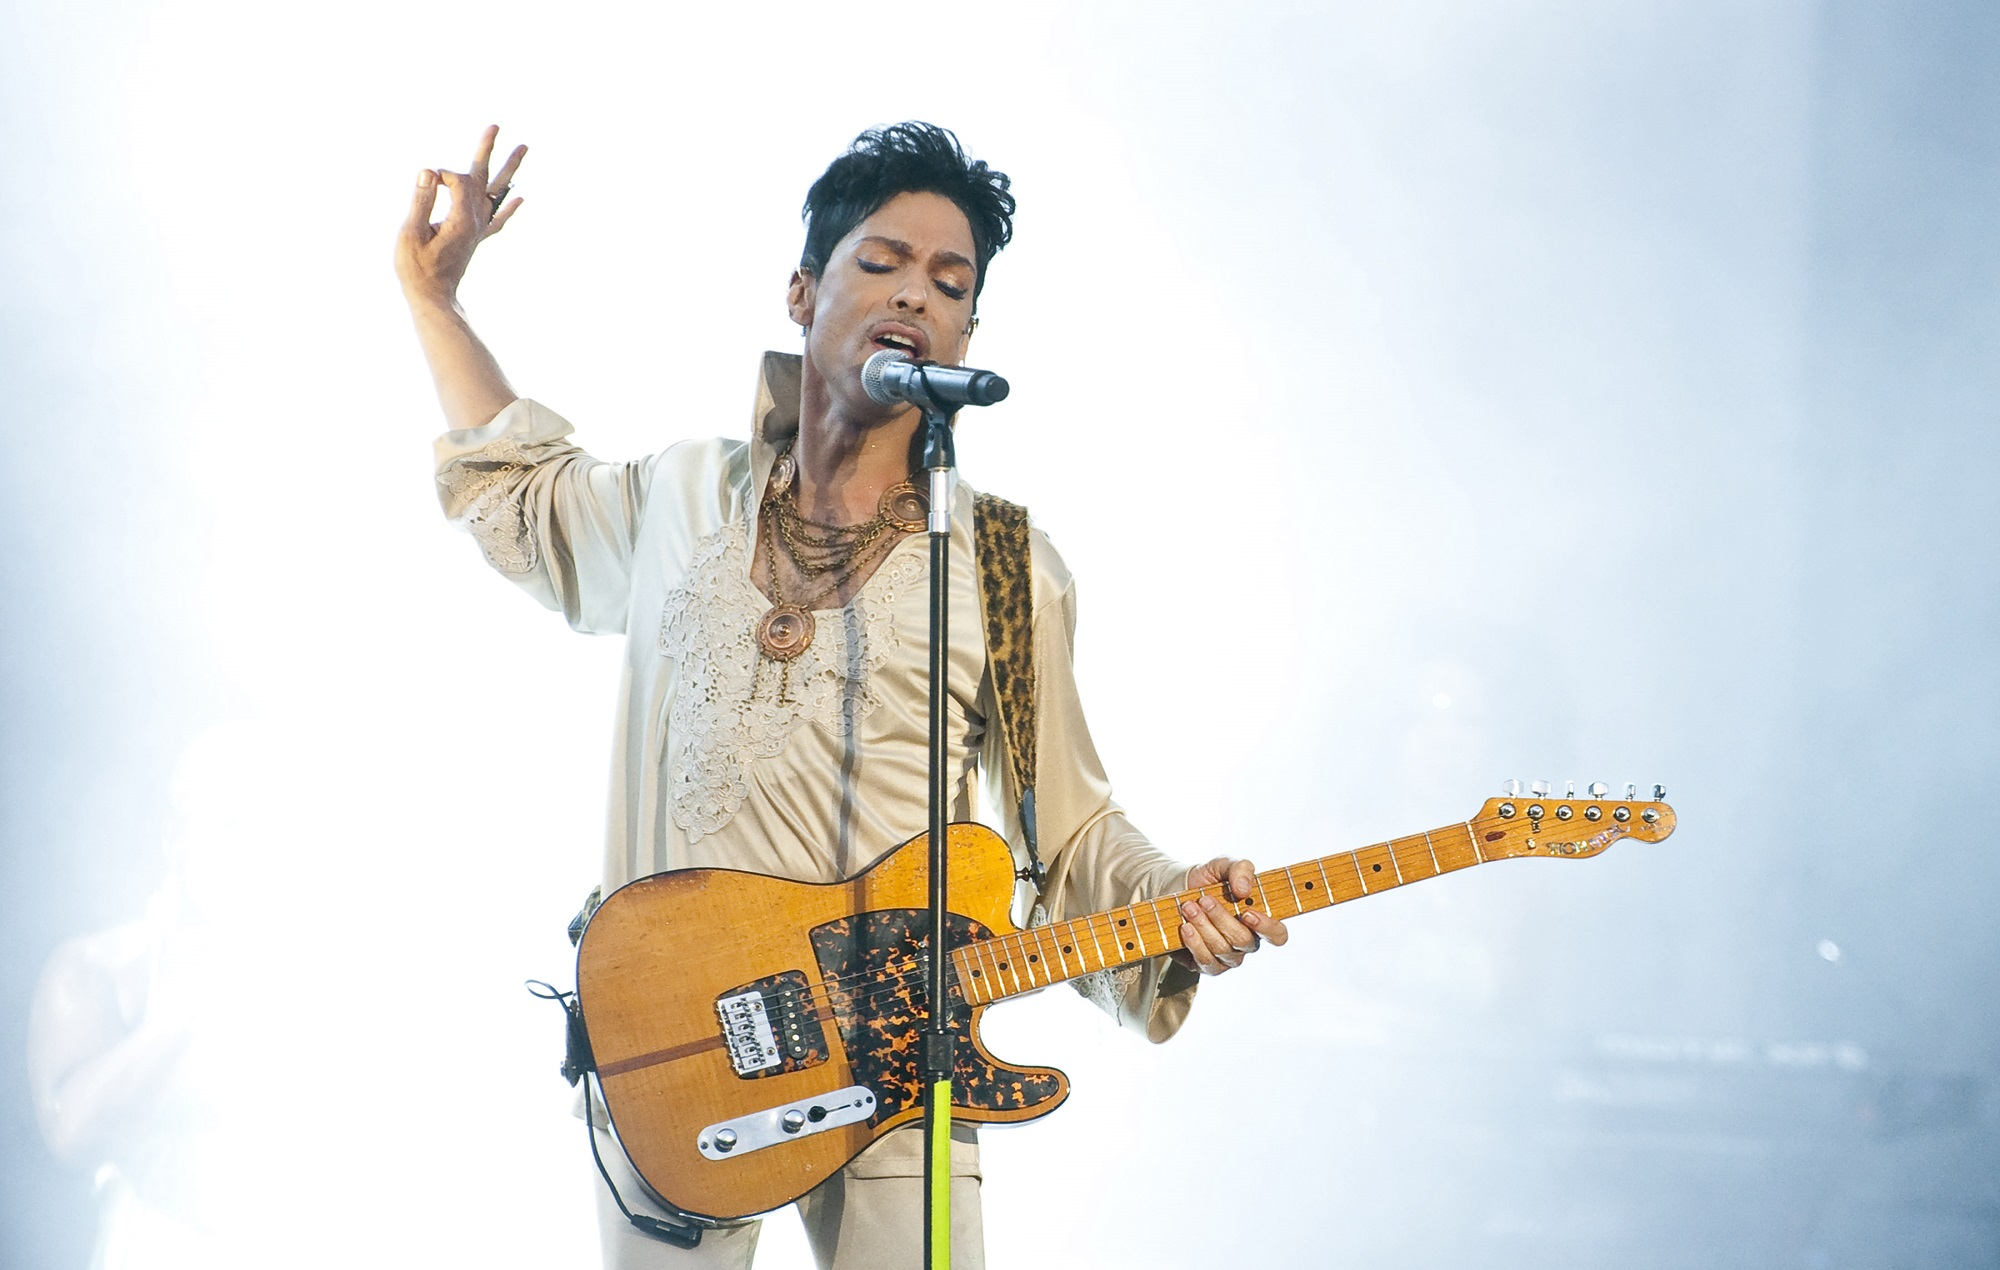 NME Festival blog: Prince awarded posthumous honorary degree from the University of Minnesota